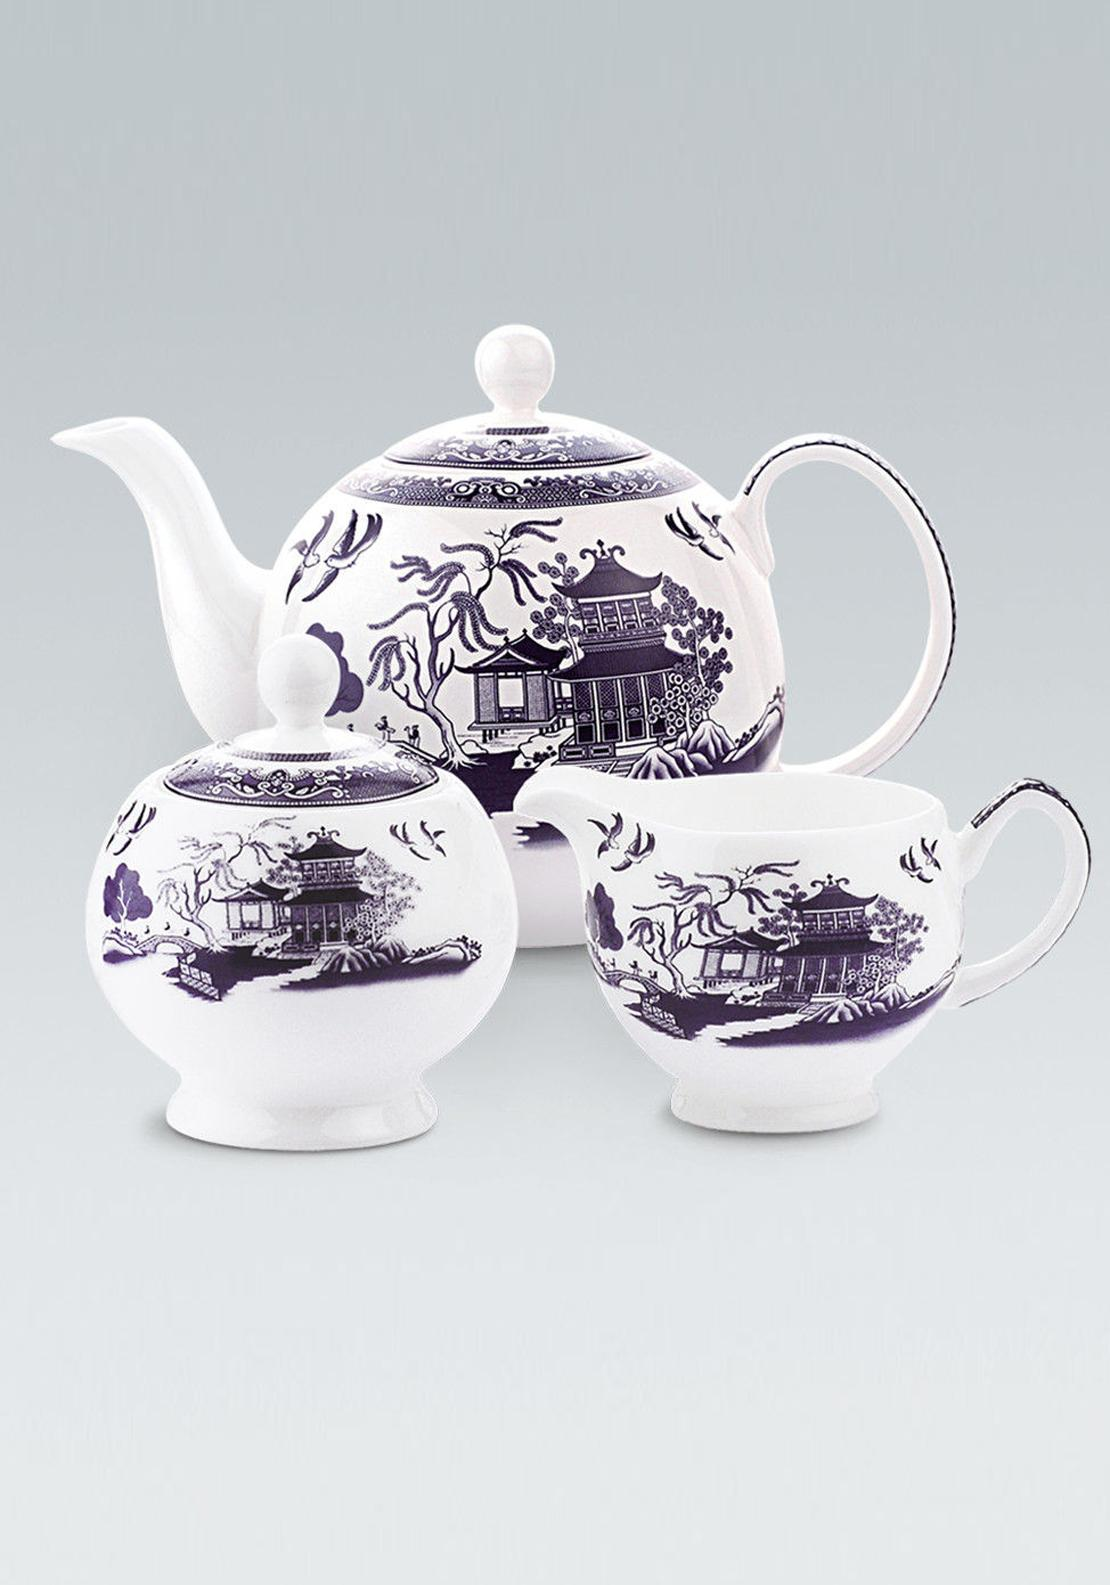 Newbridge Silverware Maureen O'Hara Willow Collection 3 Piece Tea Set